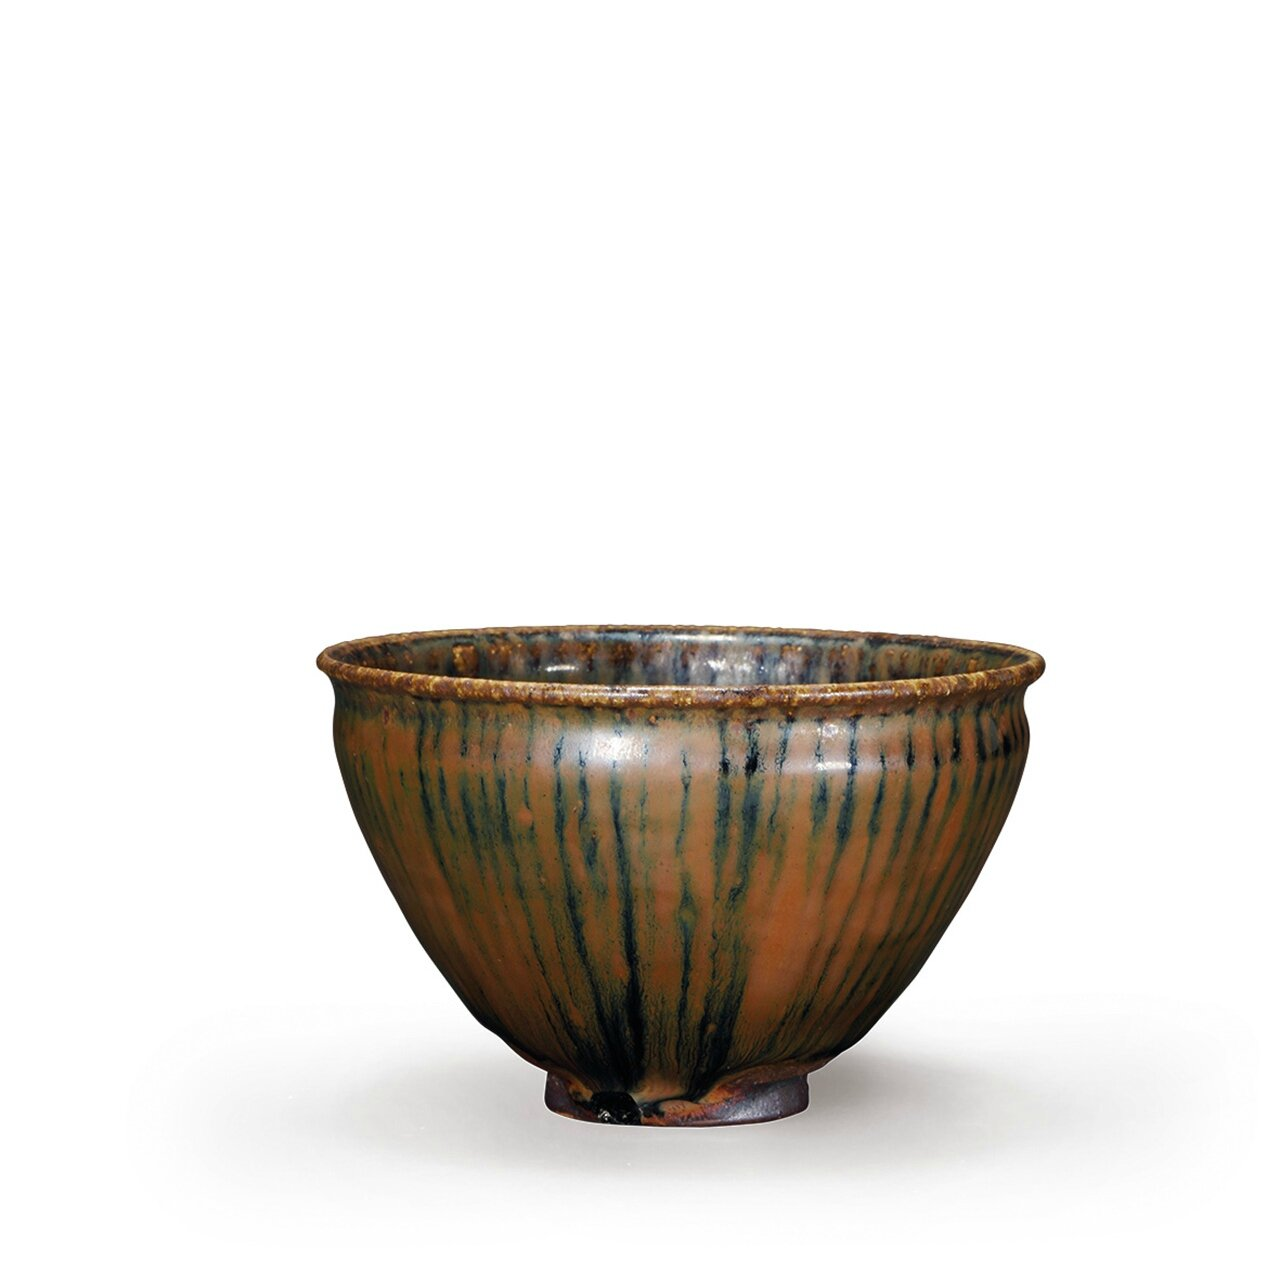 A very rare Northern kiln teabowl with bronze imitation glaze, Song Dynasty (AD960-1279)